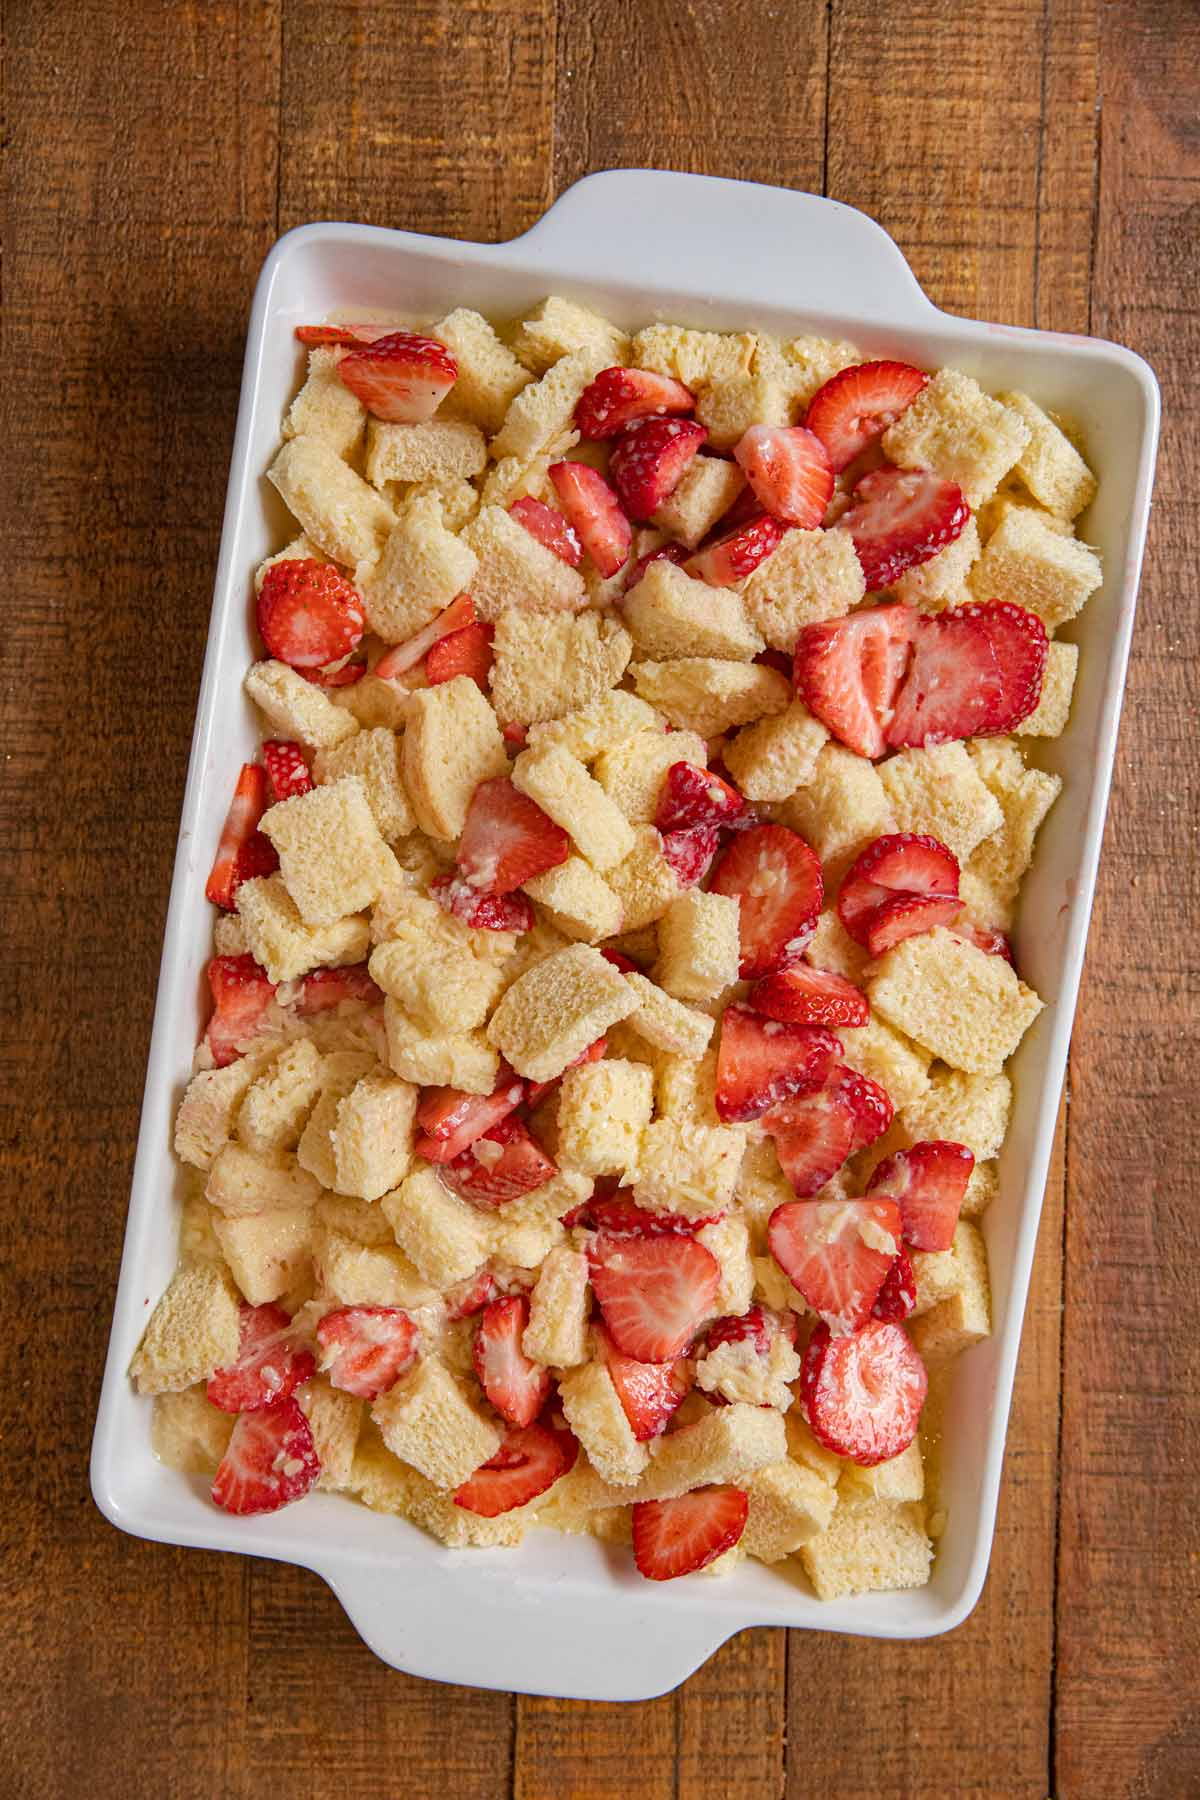 Strawberry Nutella Bread Pudding in baking dish before baking